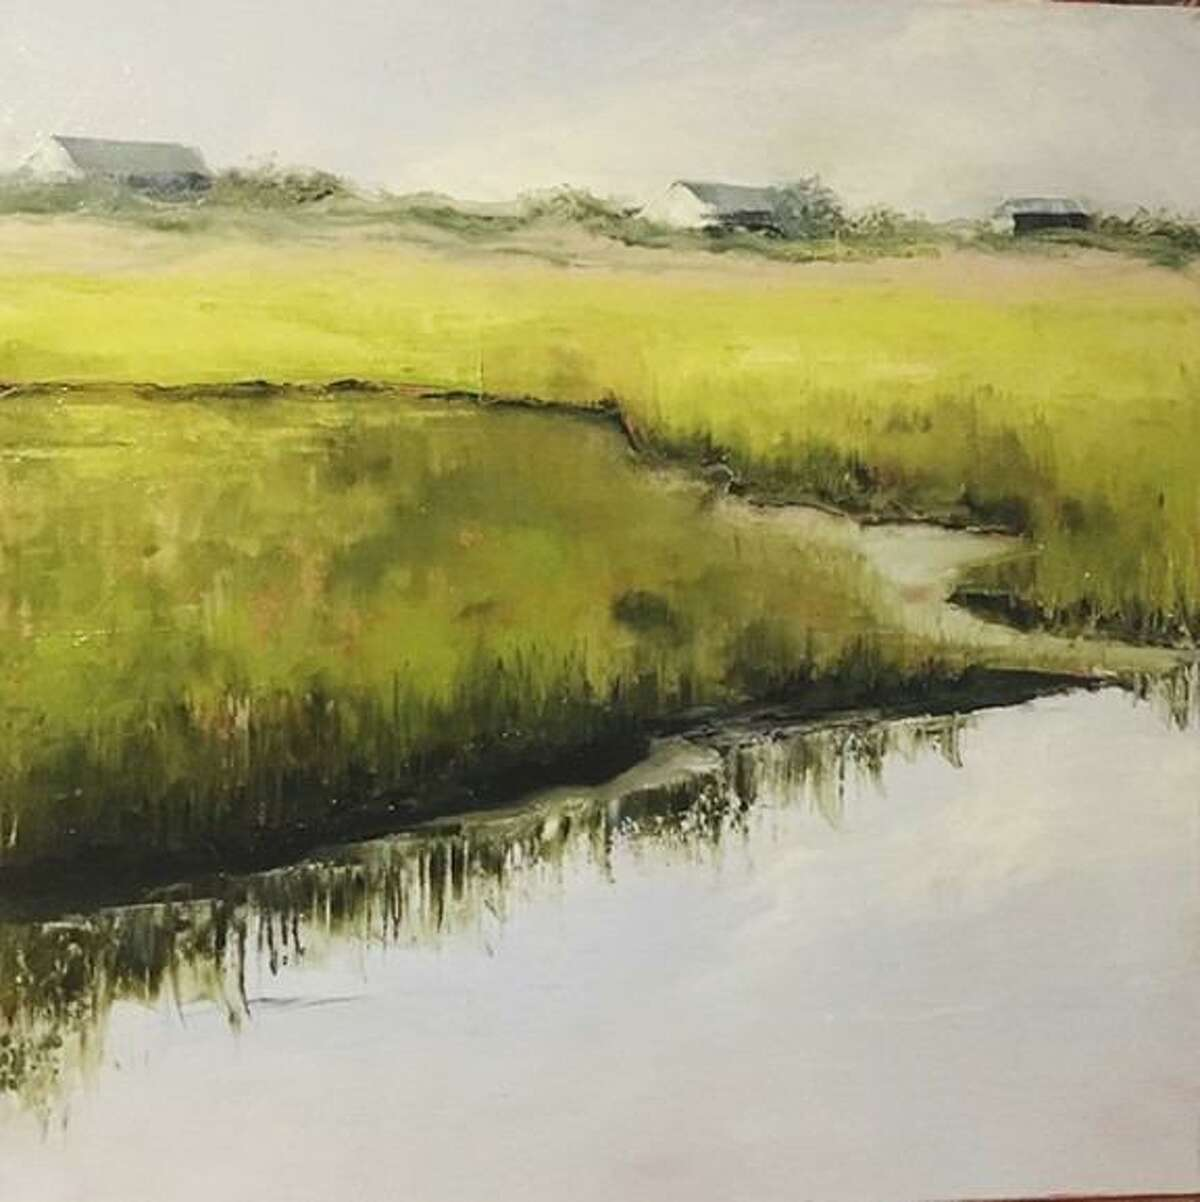 The Westport Woman's Club will host its annual Art Show, May 22, and May 23, from 2 to 6 p.m., both days, indoors at the non-profit philanthropic organization's clubhouse, located at 44 Imperial Ave, in Westport.